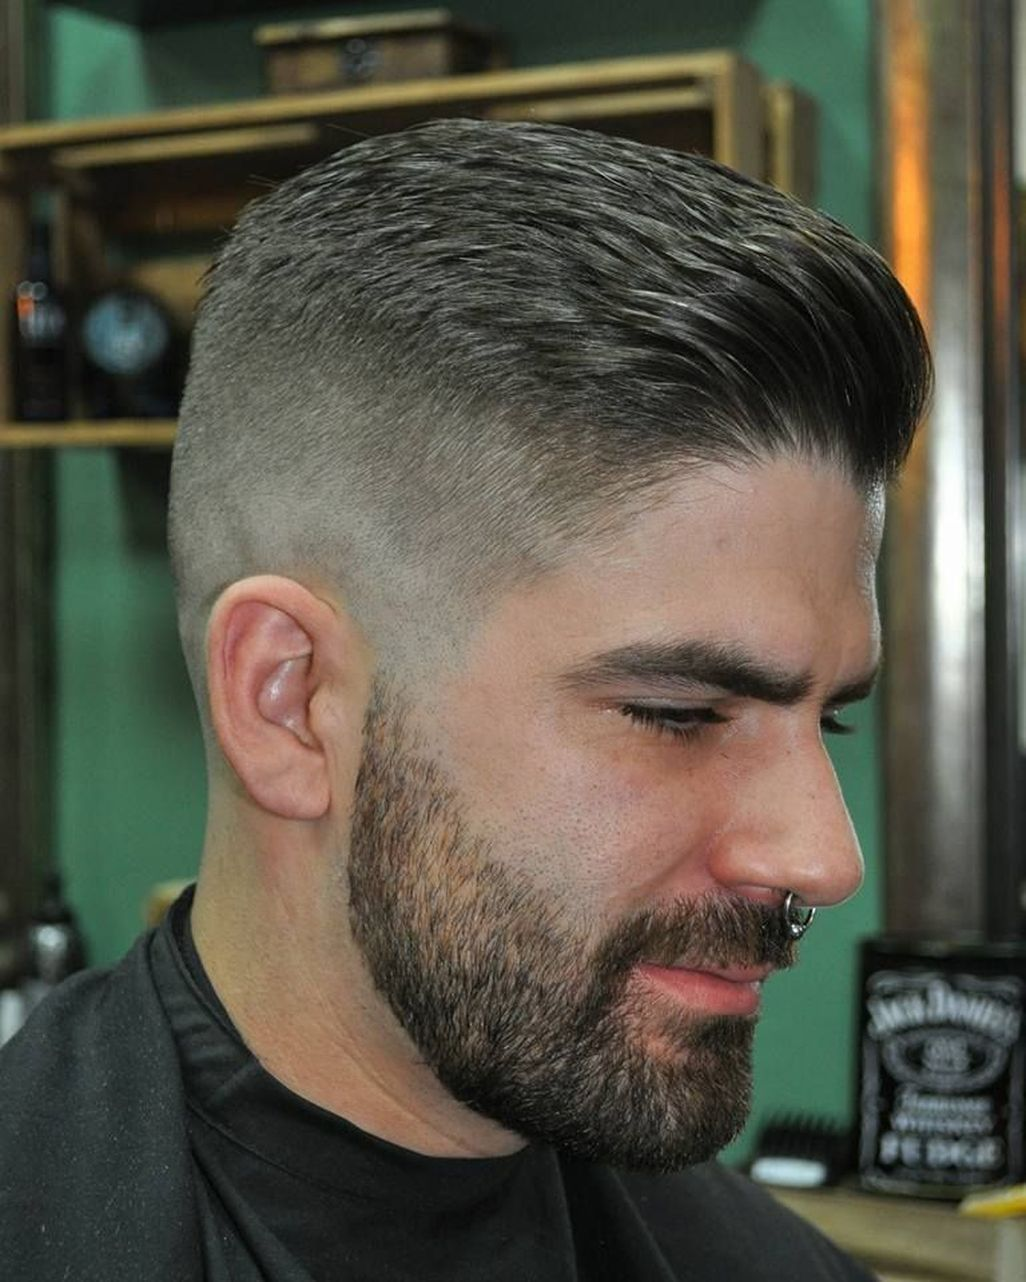 34 top beard styles for men to try now | beard styles bald